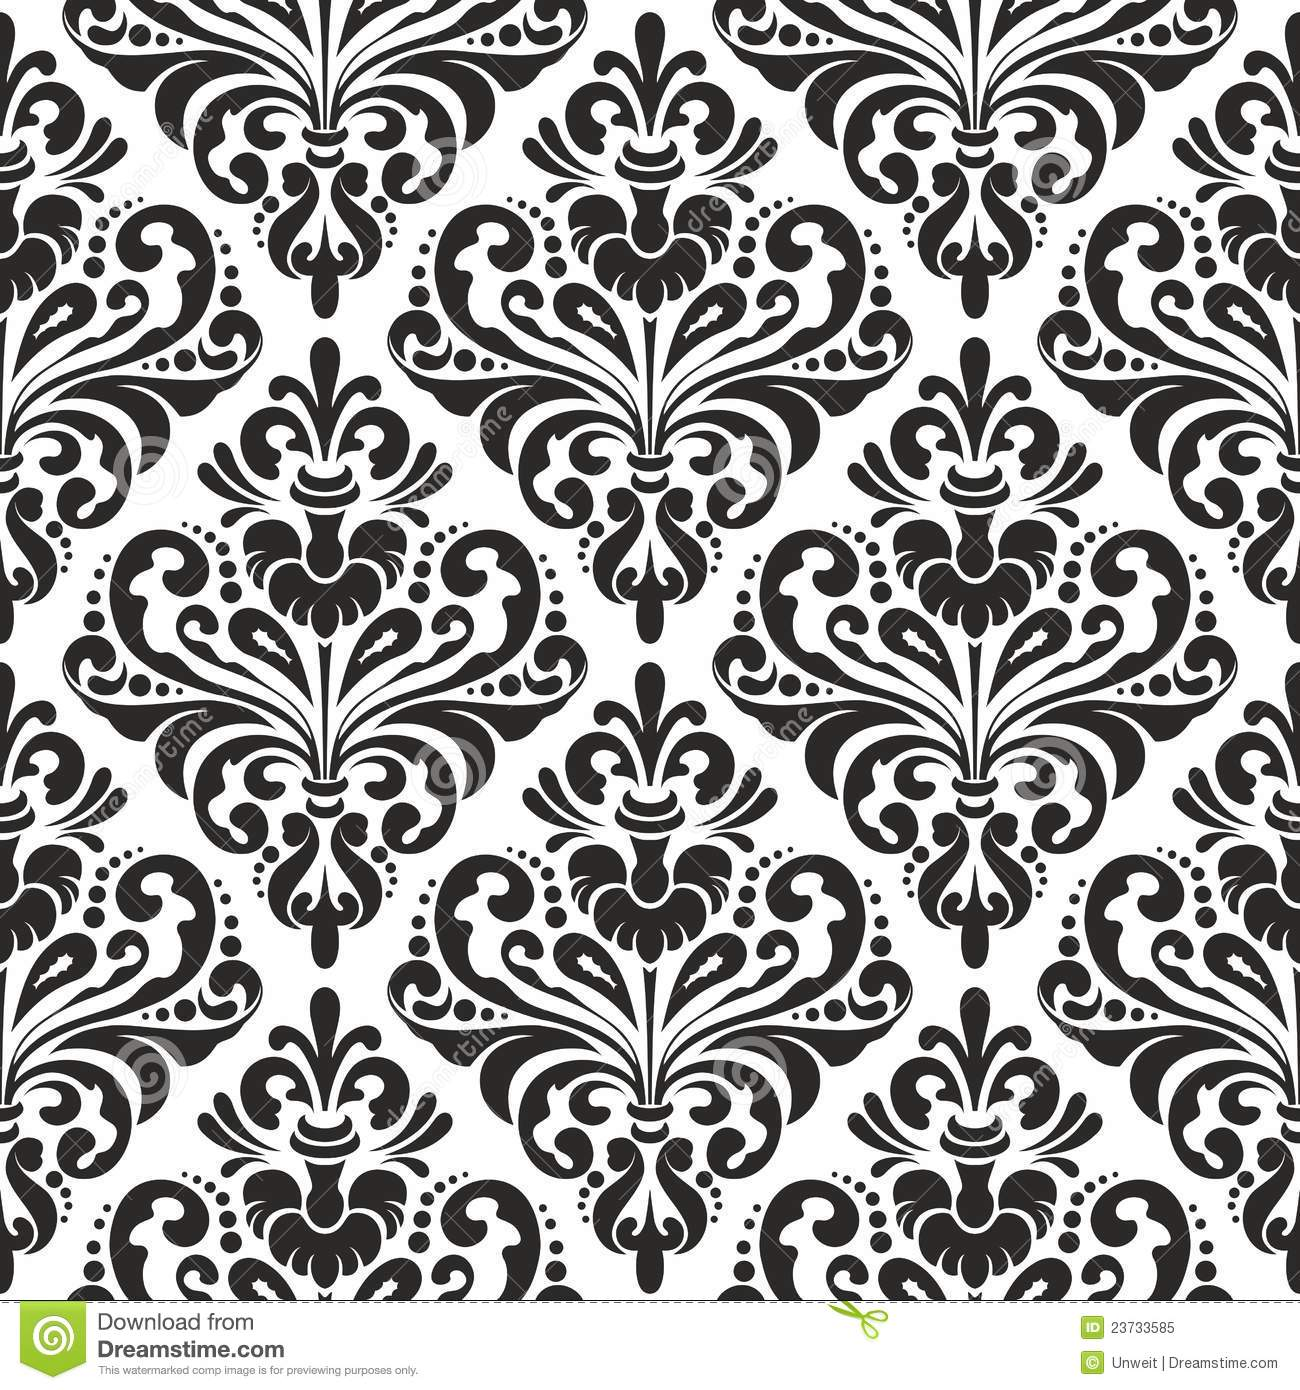 Monochrome flower pattern